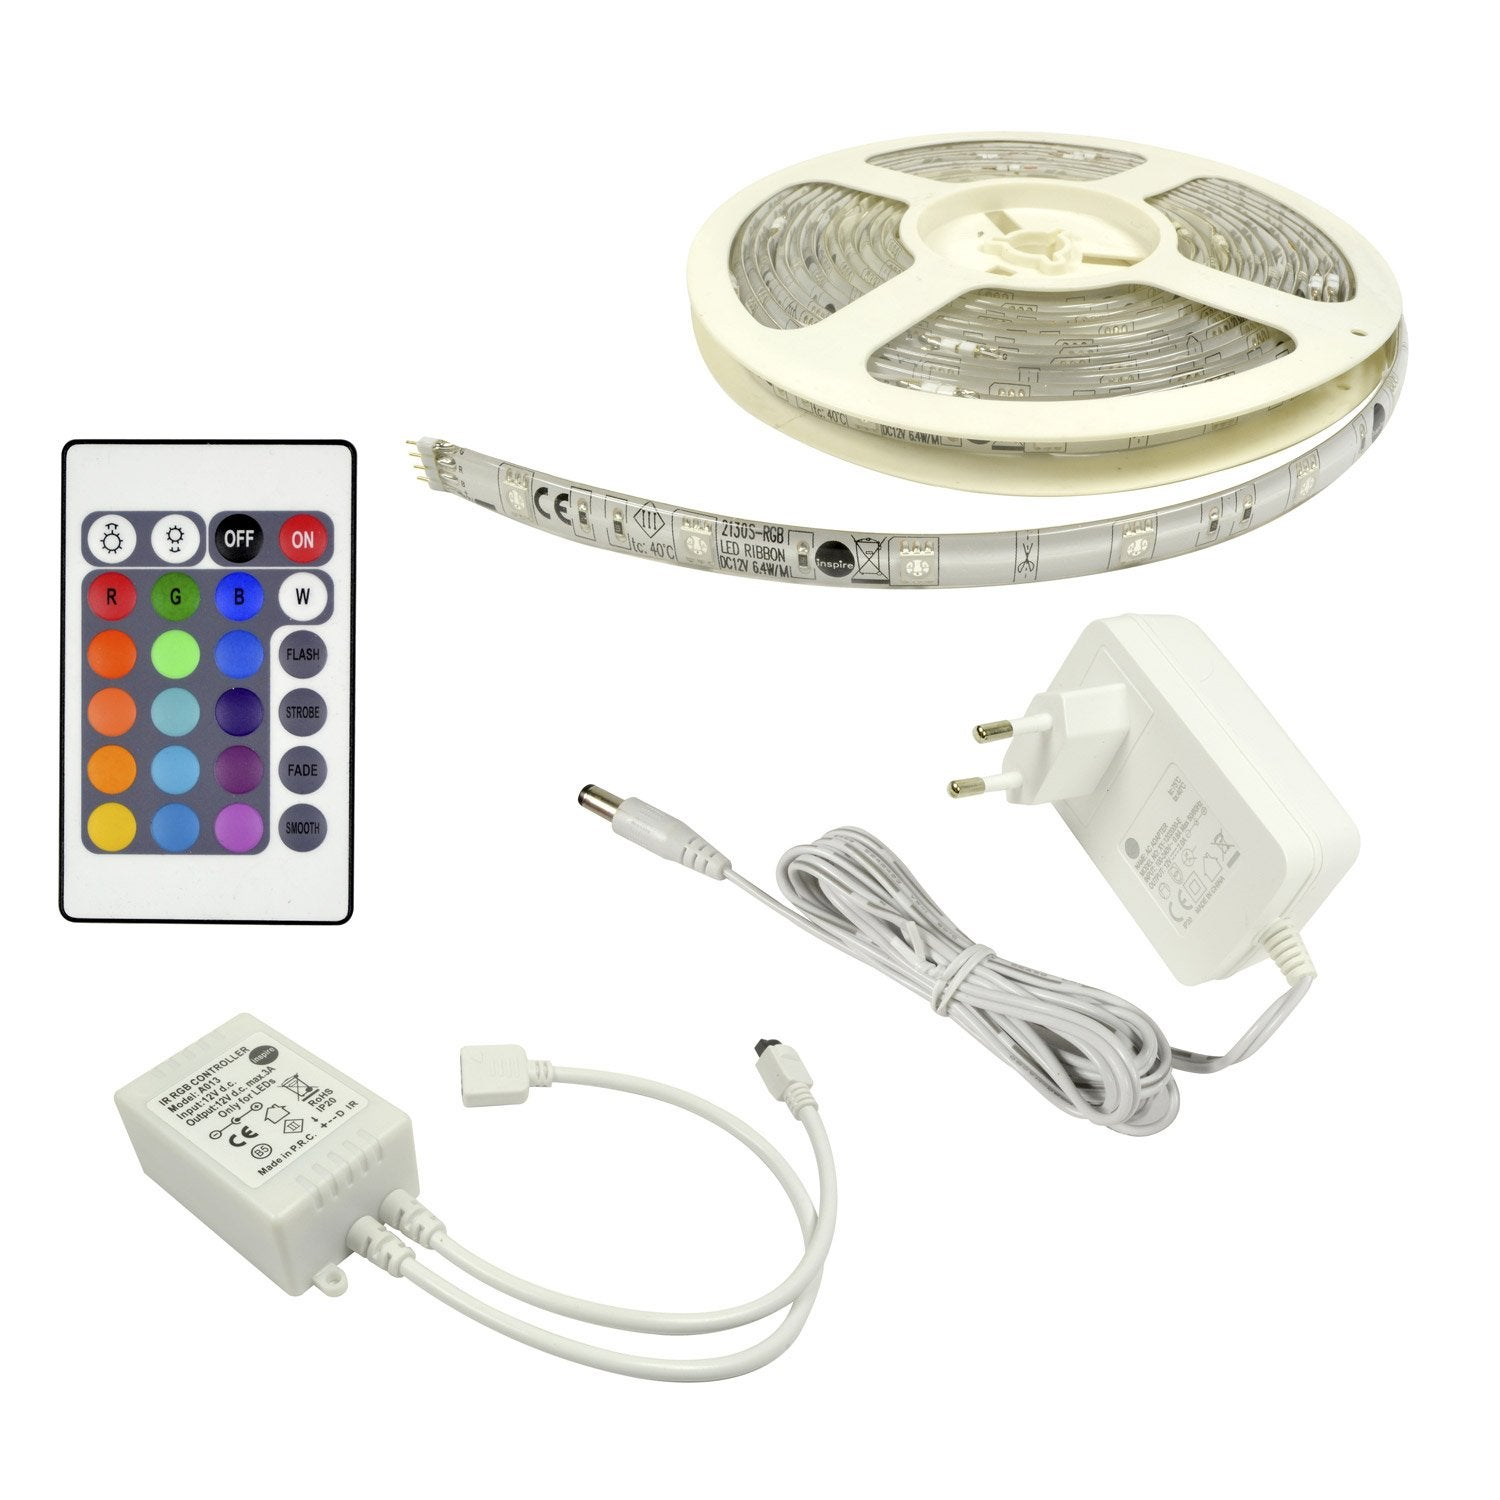 kit ruban led 5m multicolore flexled inspire leroy merlin With carrelage adhesif salle de bain avec eclairage led multicolore exterieur